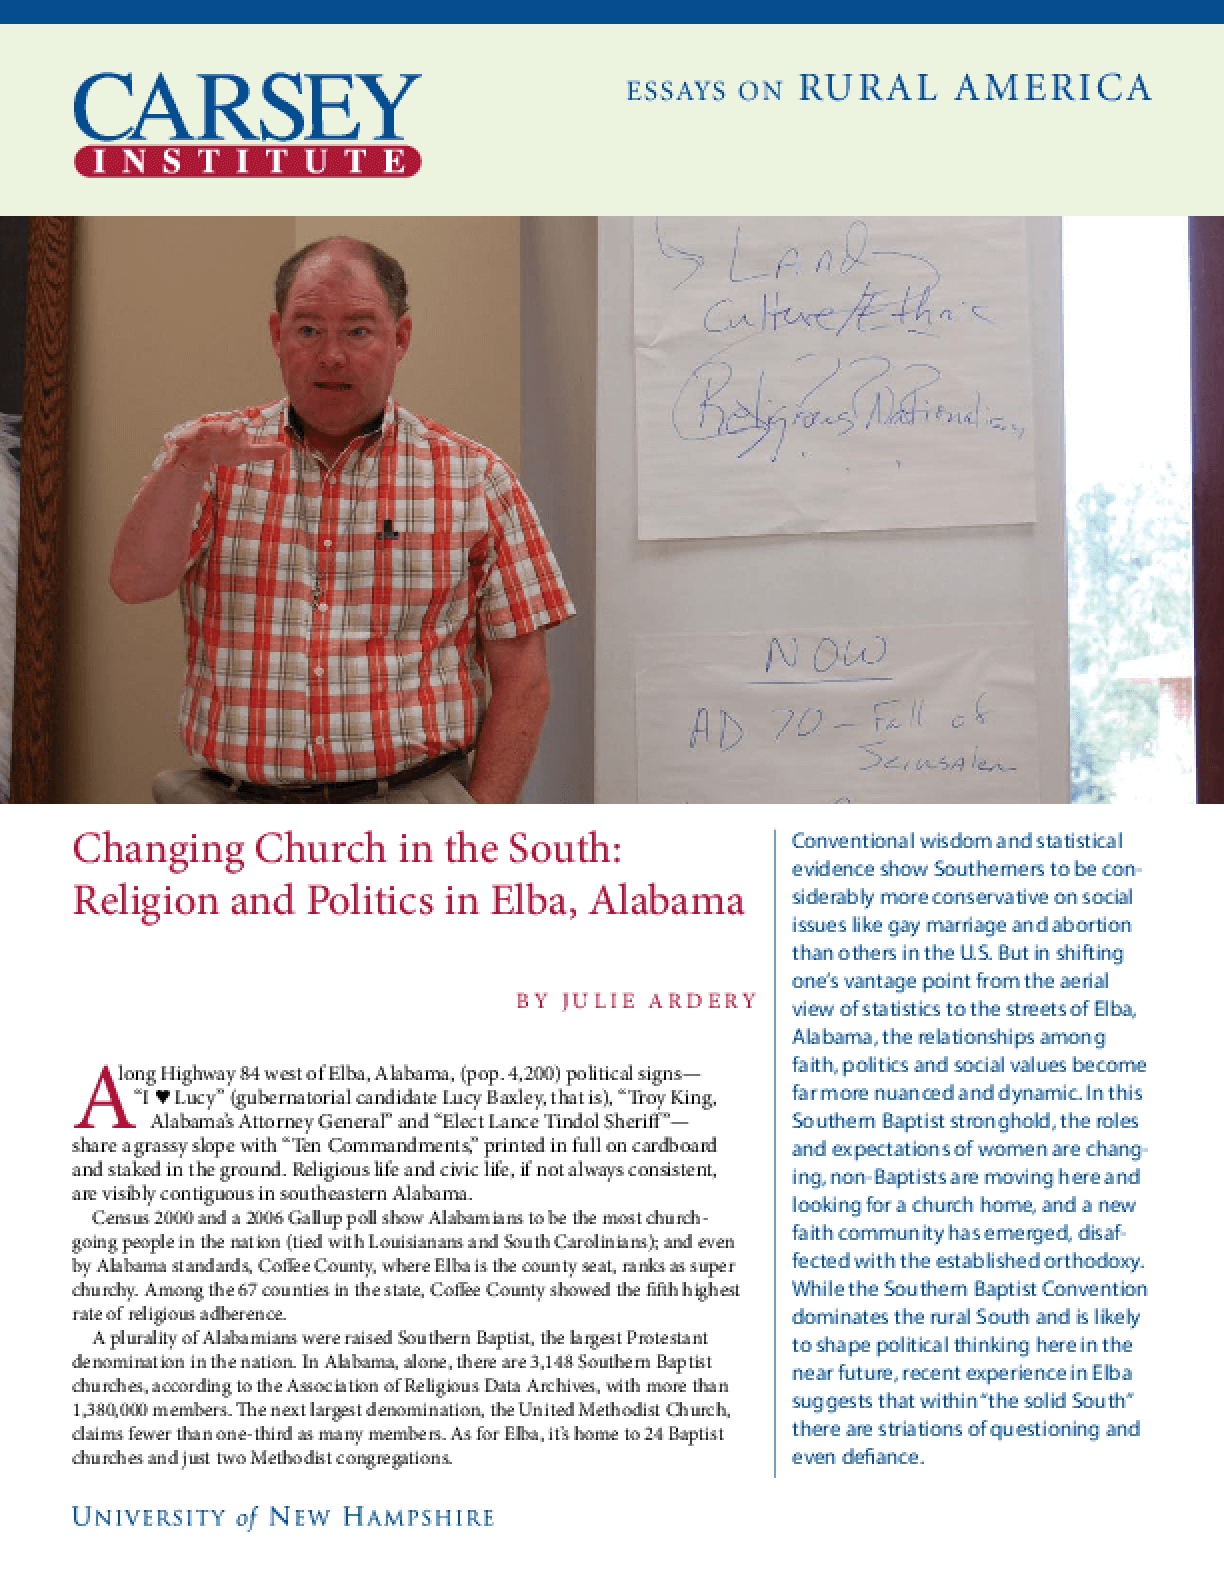 Changing Church in the South: Religion and Politics in Elba, Alabama